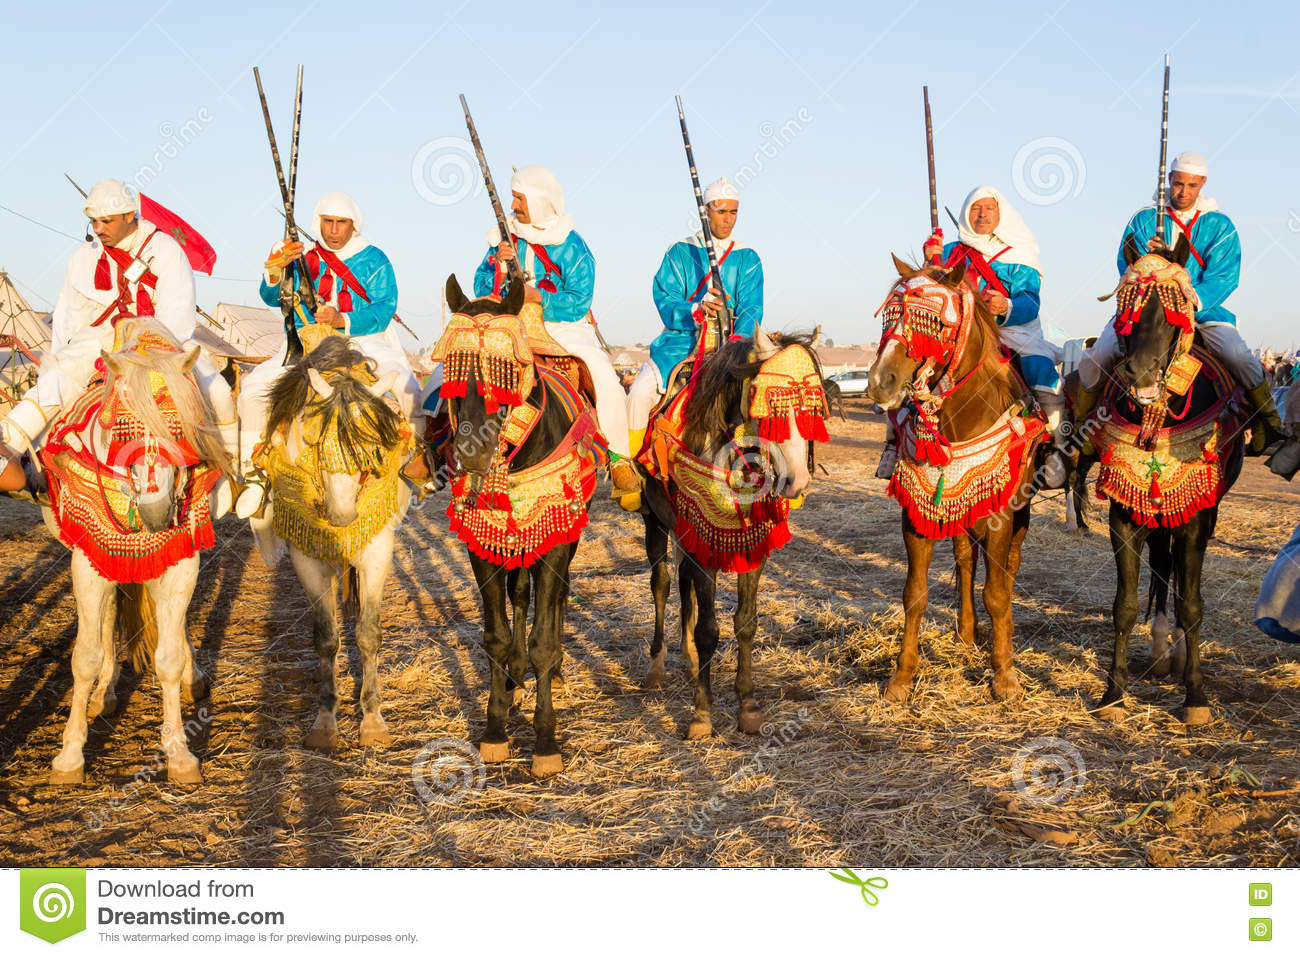 Moroccan horse riders during fantasia festival